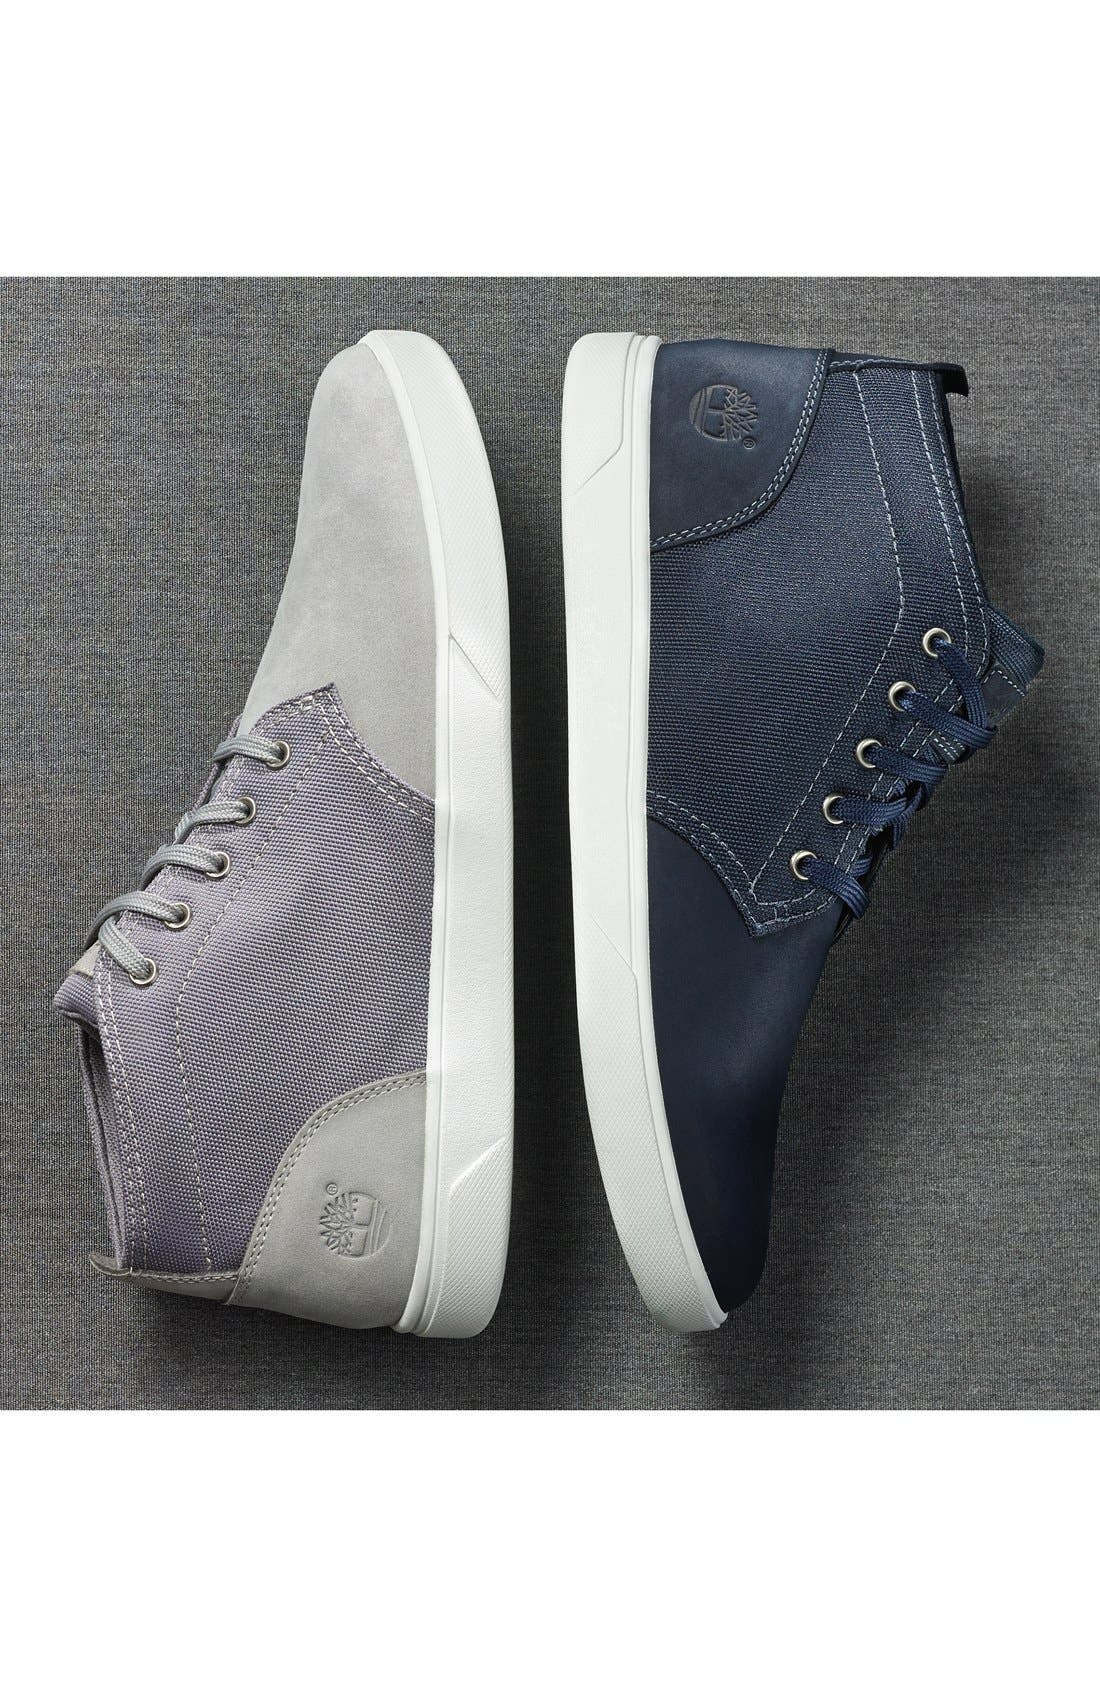 Earthkeepers<sup>™</sup> 'Groveton' Chukka Sneaker,                             Alternate thumbnail 11, color,                             001